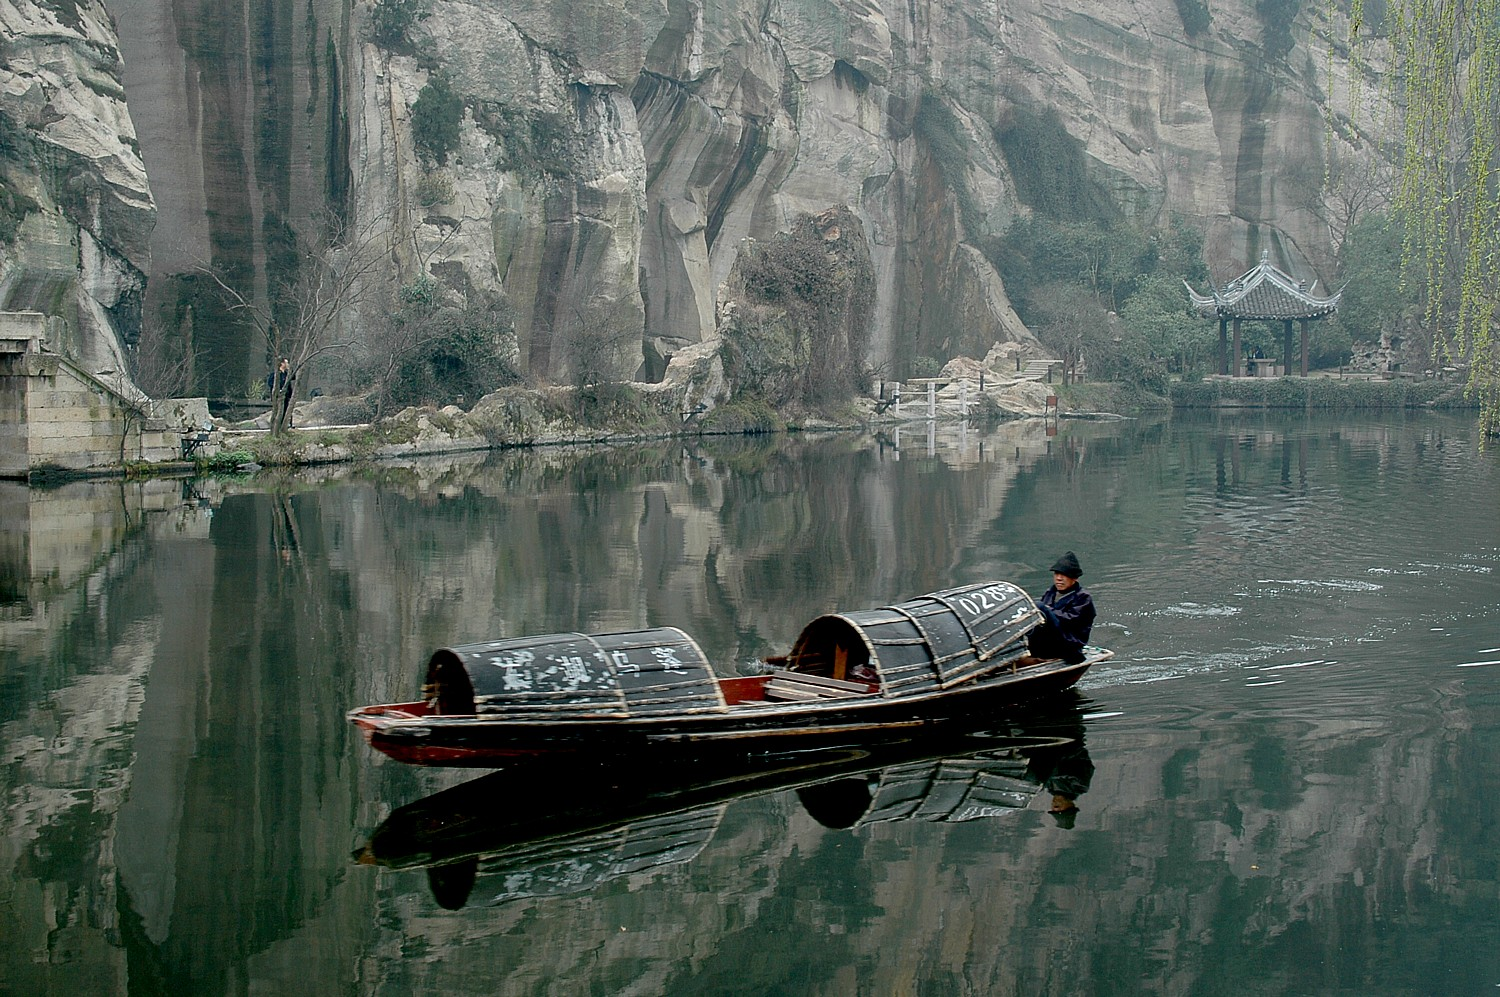 Traditional boats powered by oars pushed by feet, at East Lake, a preserved village in Zhejiang © 2016 Karen Rubin/goingplacesfarandnear.com